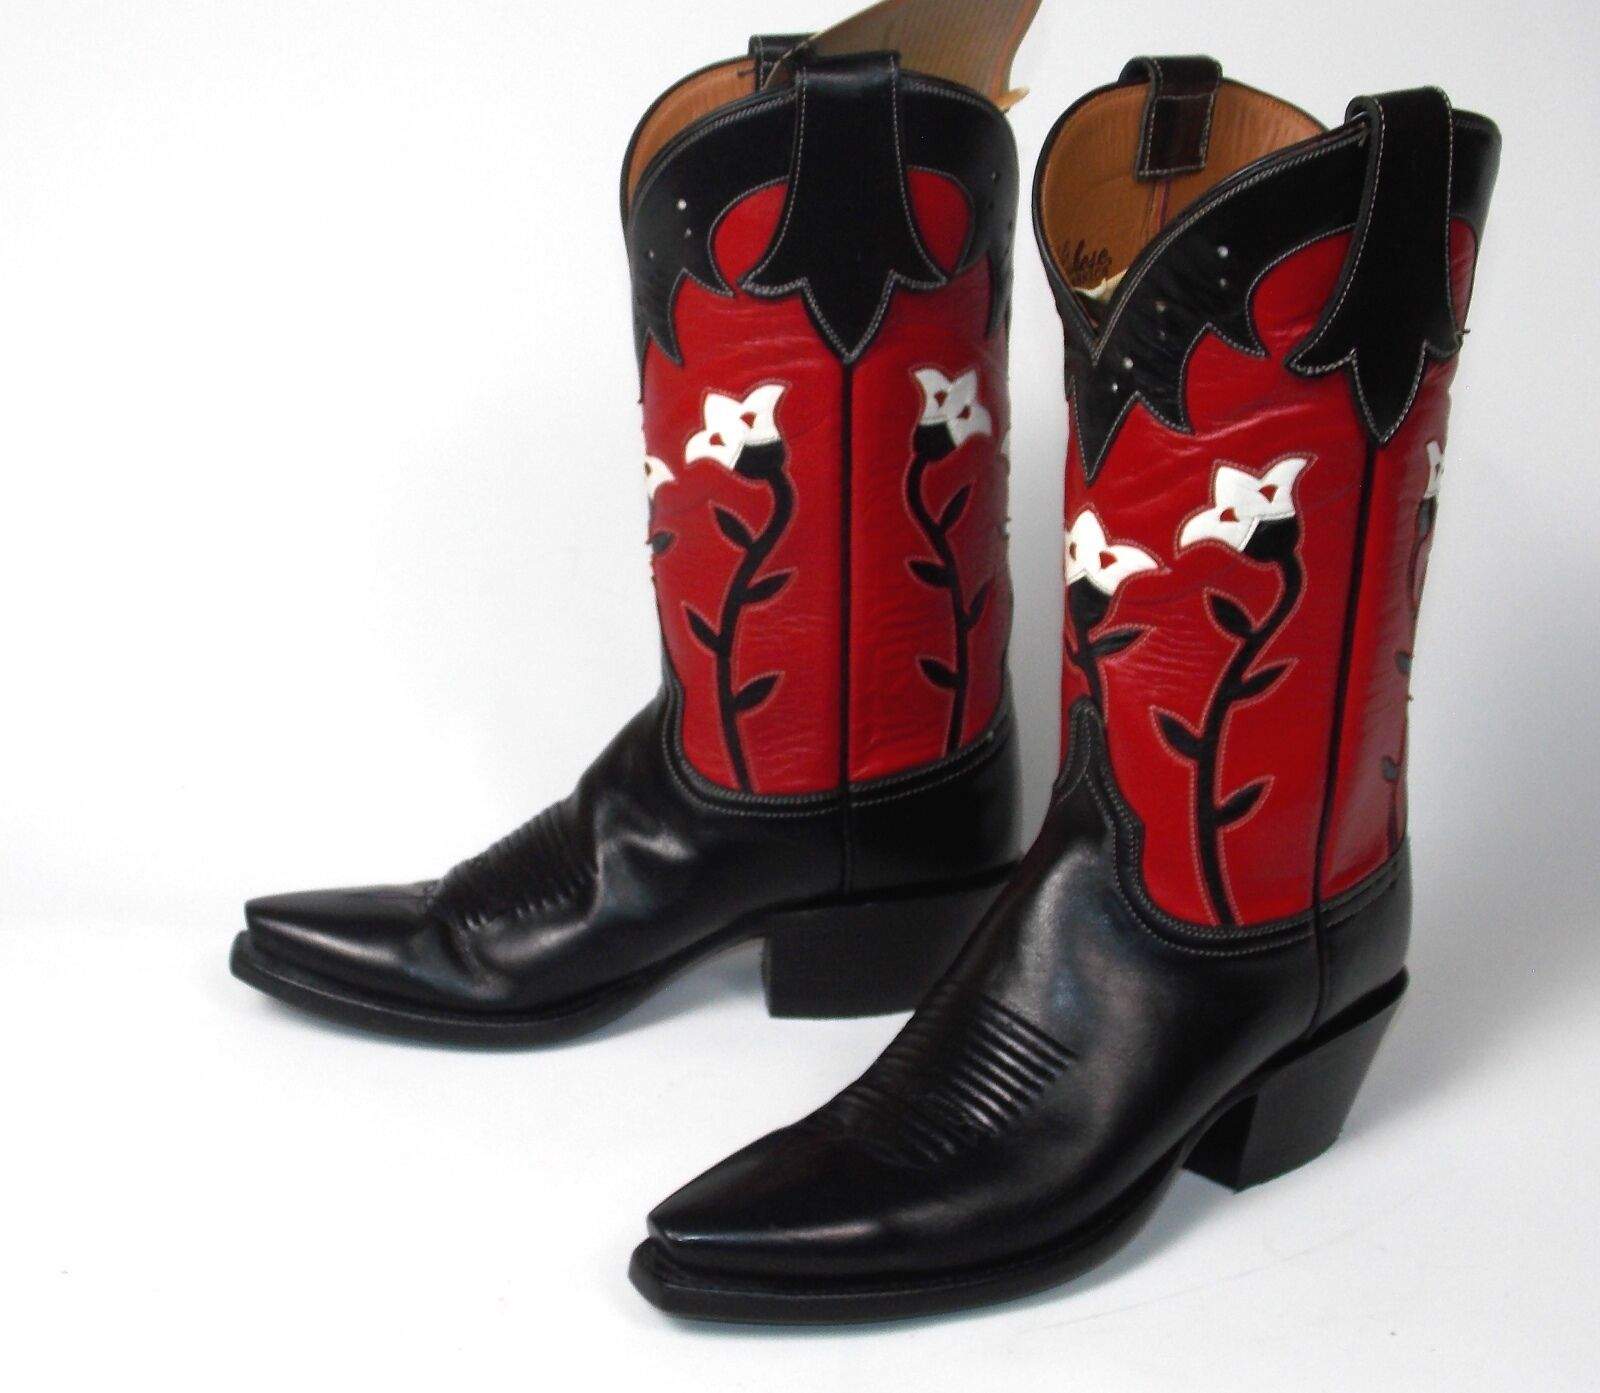 Lucchese Classics Red Black Floral Cowboy Boots - Woman's 8.5B Inlaid New in Box